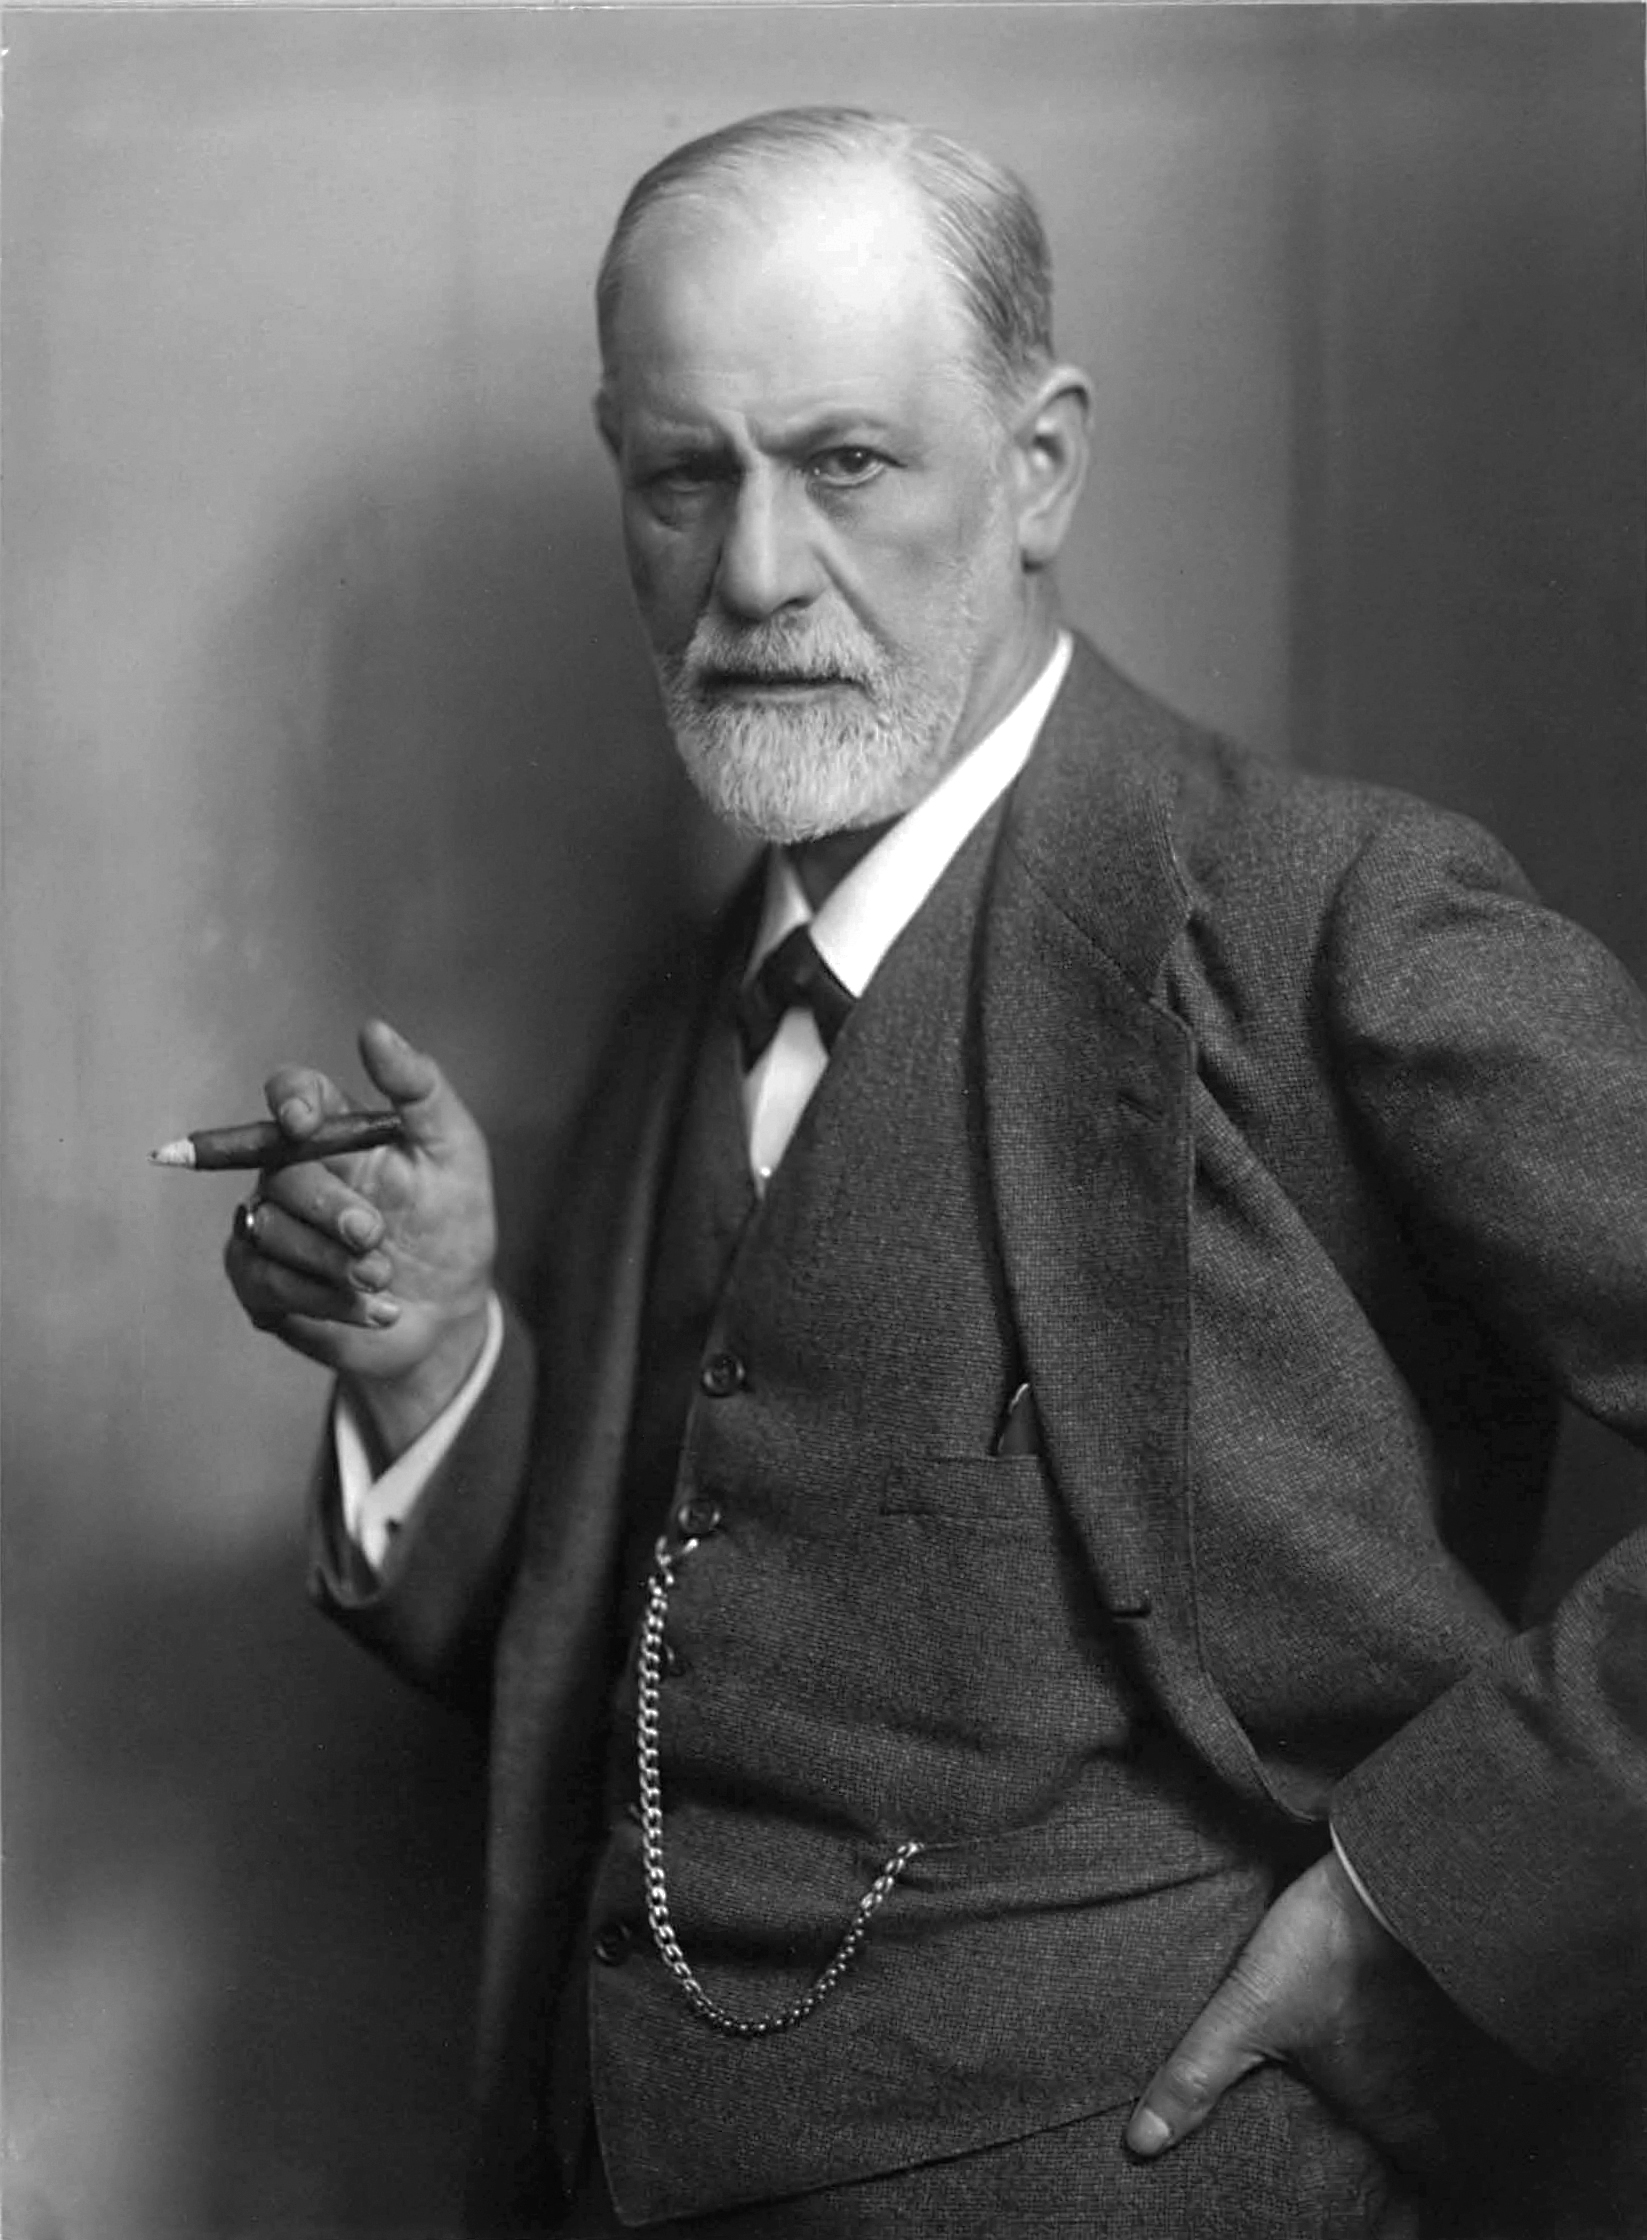 The personality theorist sigmund freud was an austrian